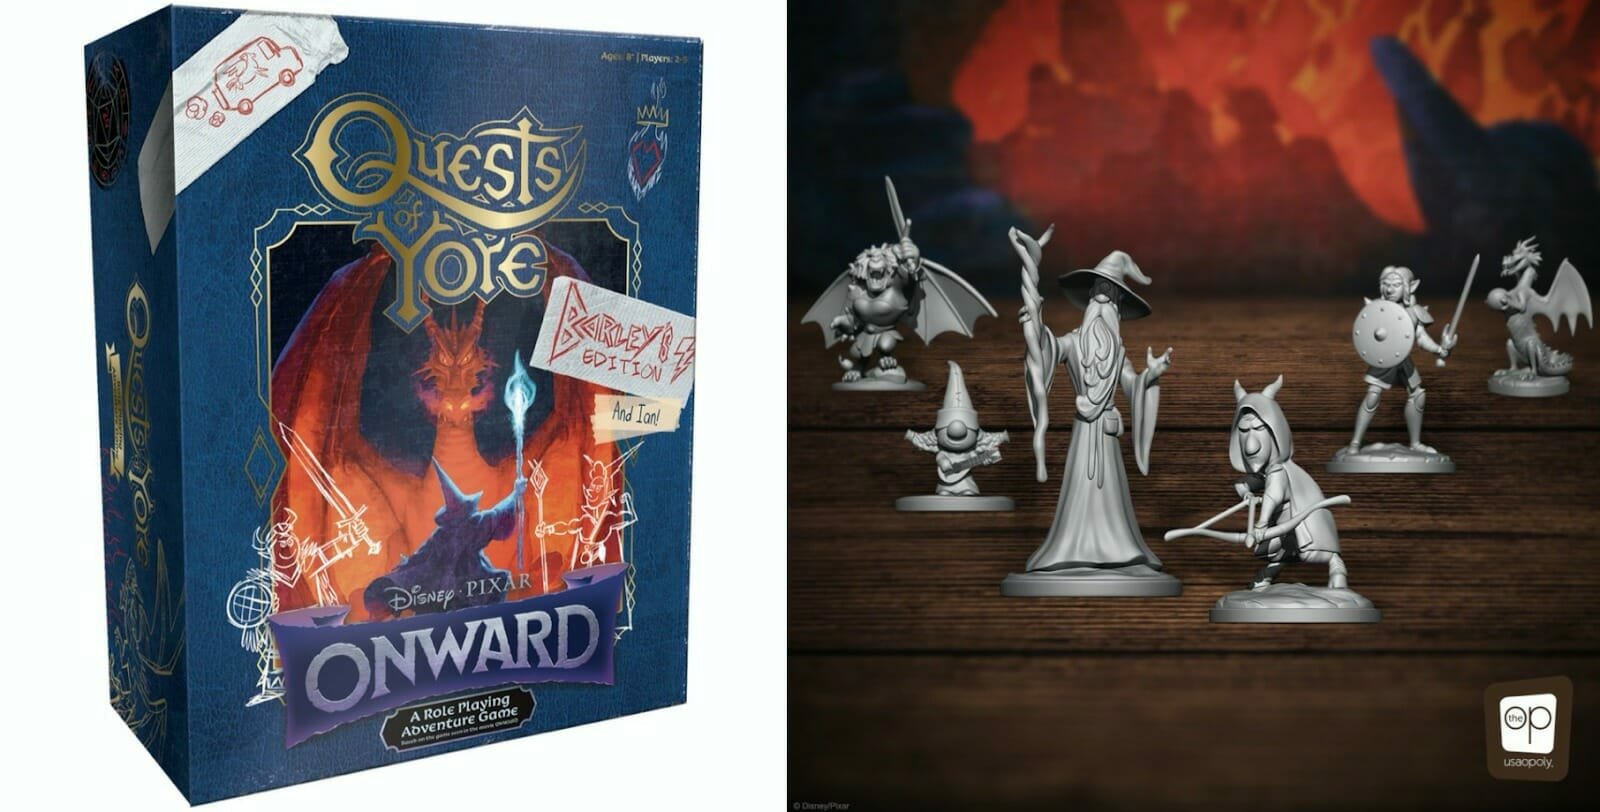 Quests of Yore RPG